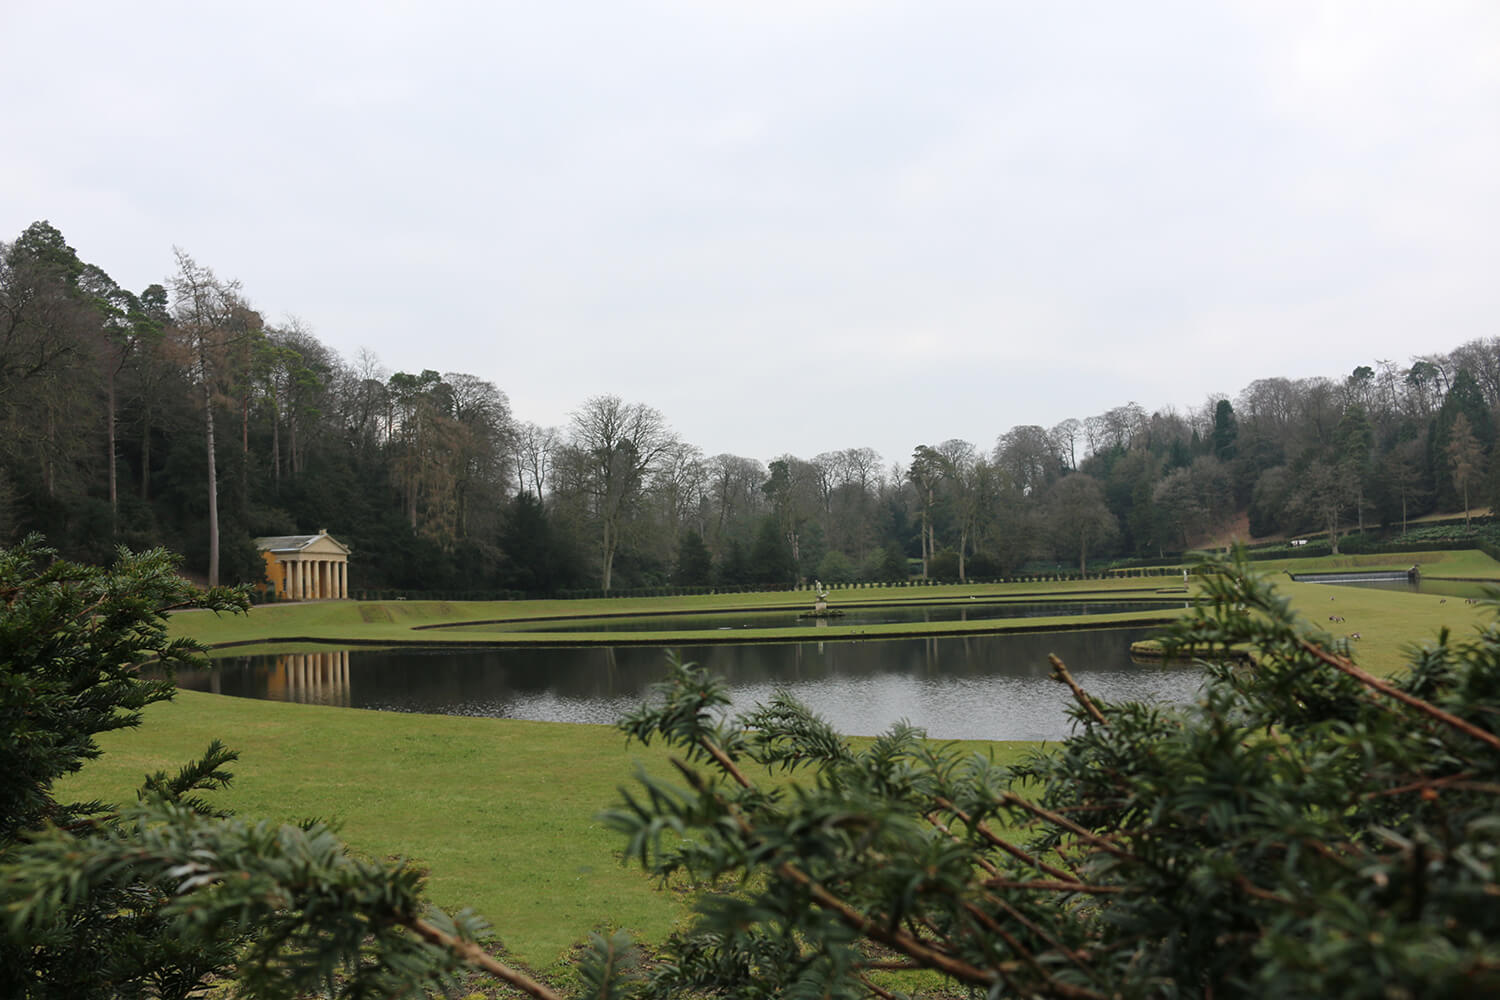 Plant supply helps restore historic Studley Royal to its former glory